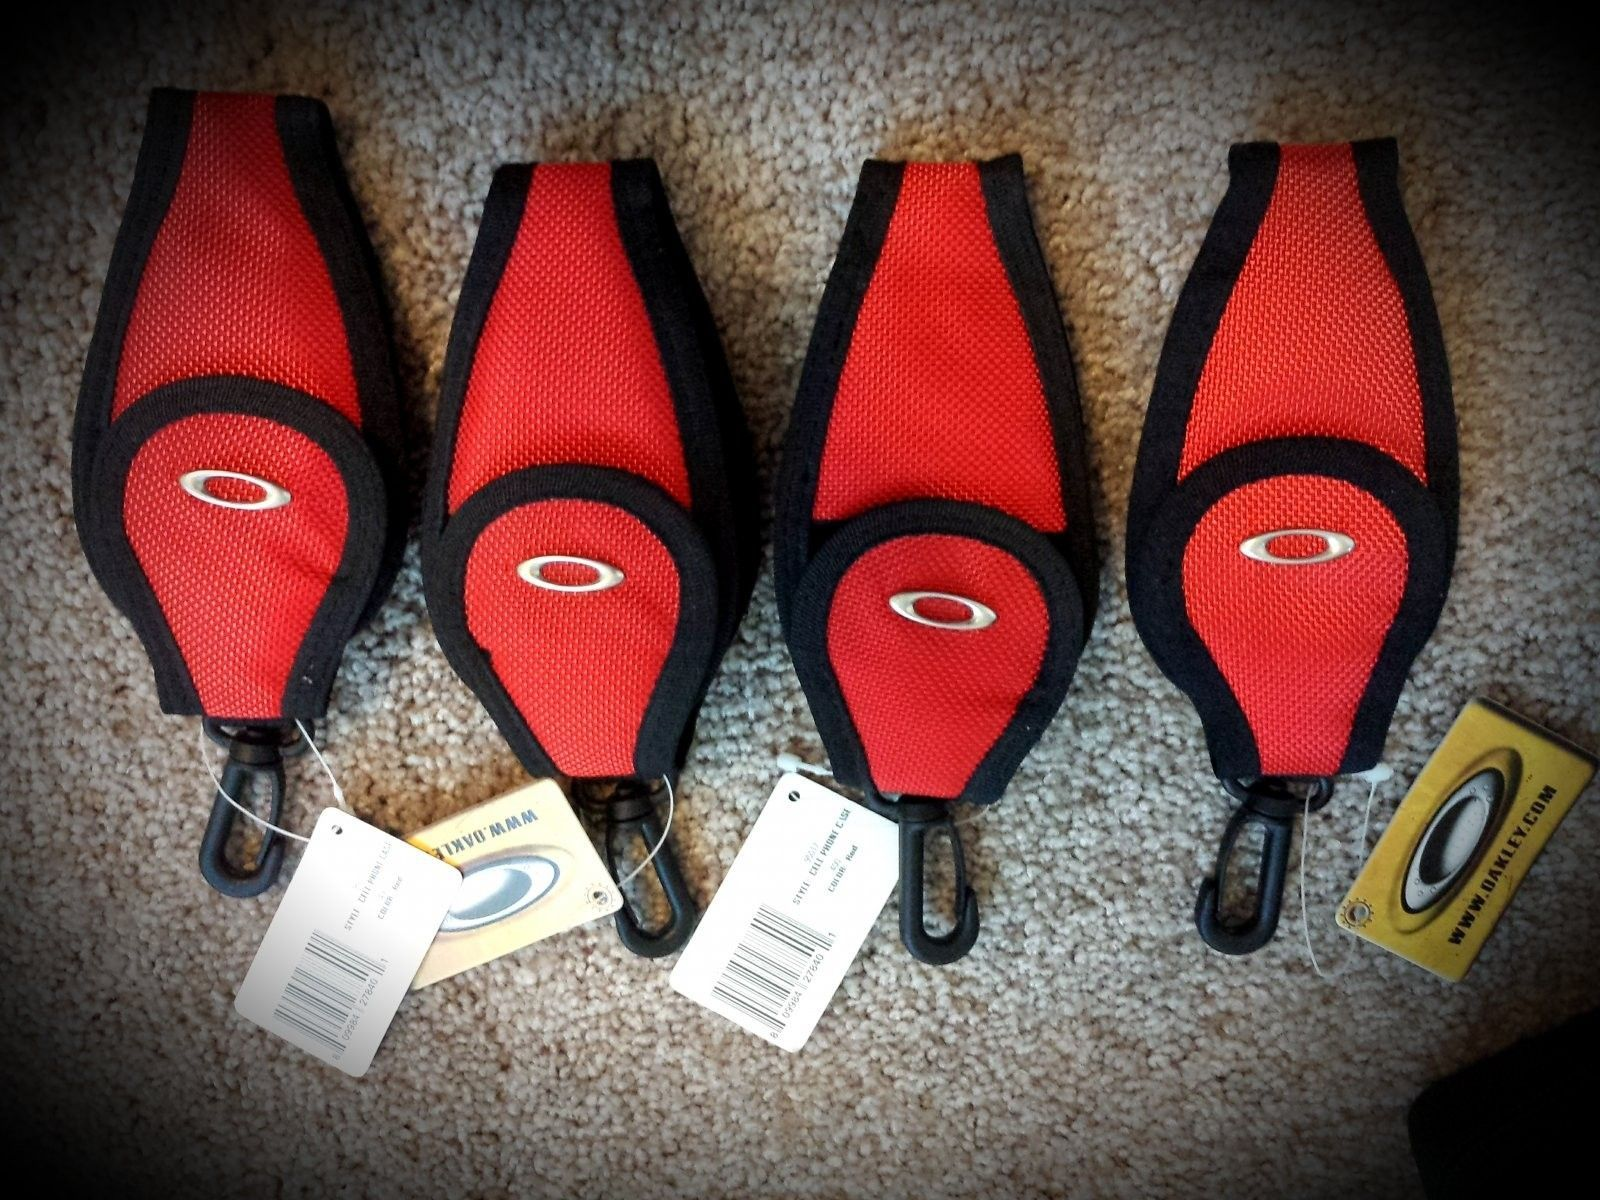 Some Of My Oakley Collection Accessories - 20141020_171342.jpg